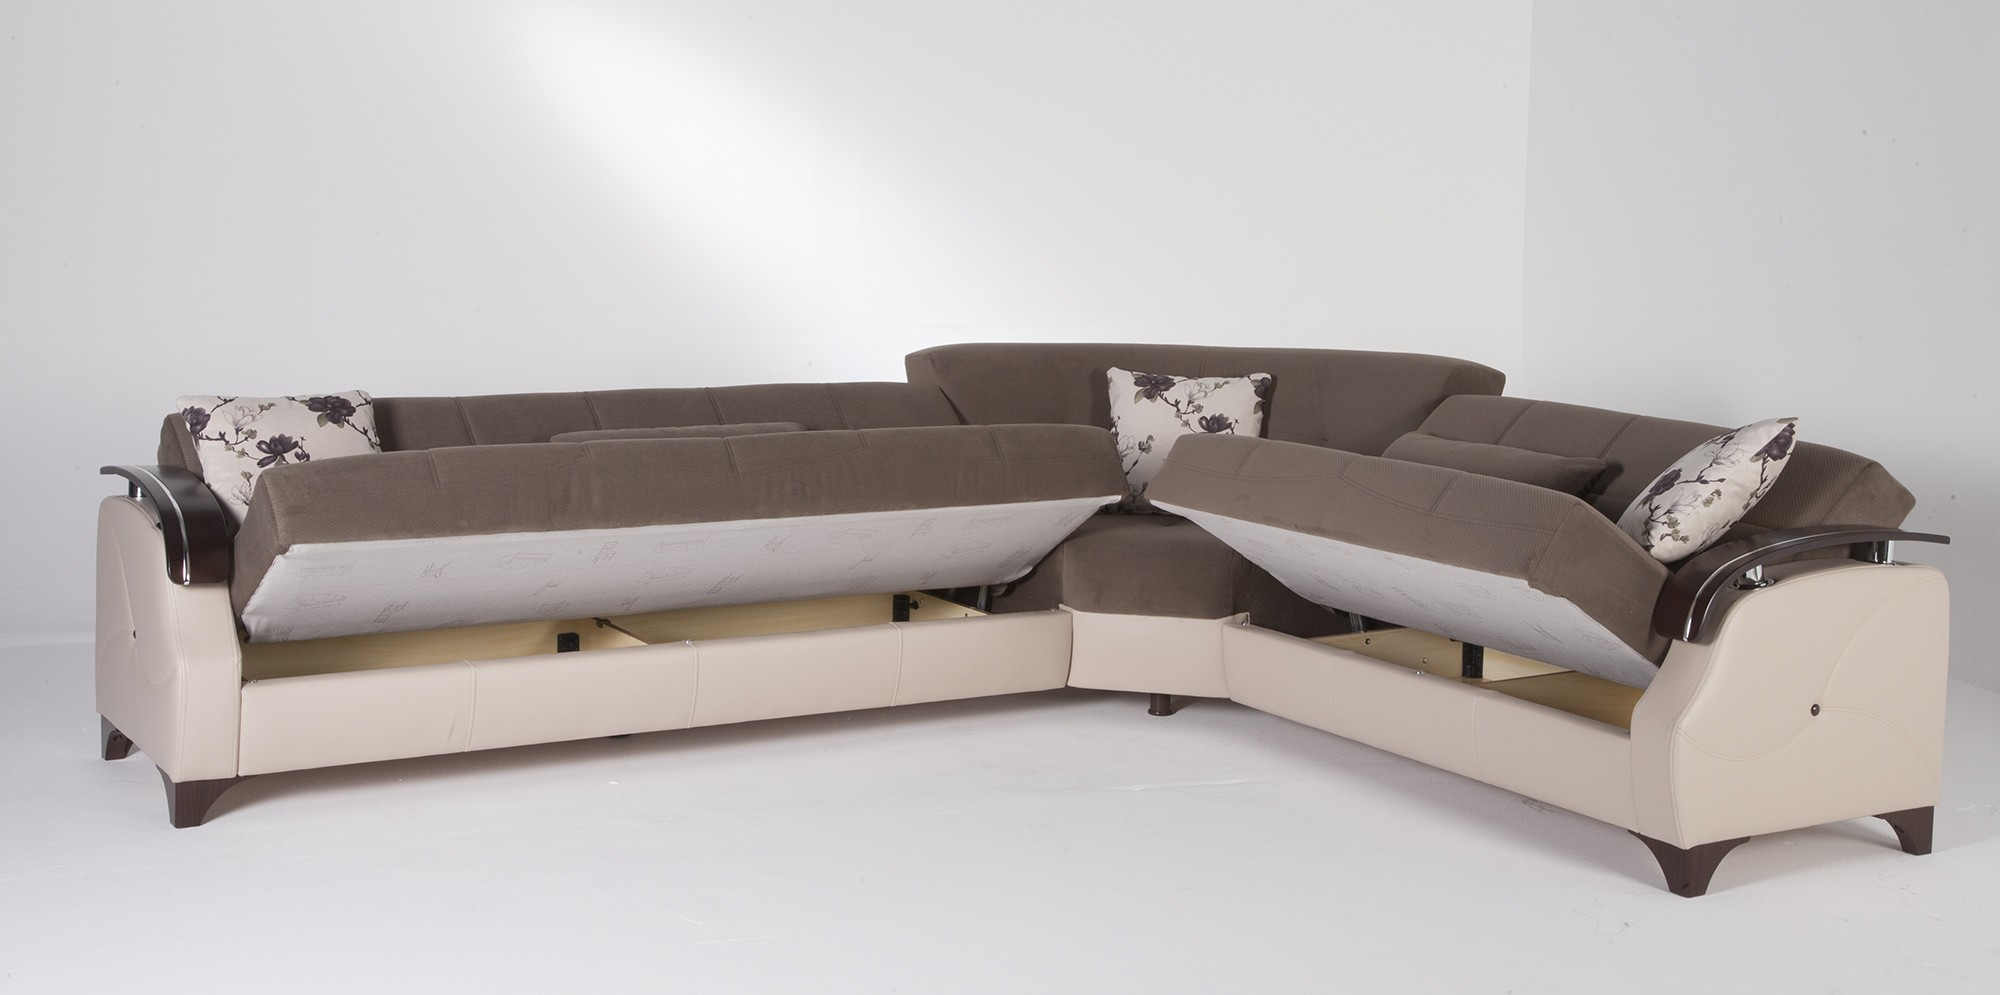 sleeper sofa sectional marvelous sectional sleeper sofas latest living room decorating ideas with sofa  sectional QBWXNWQ